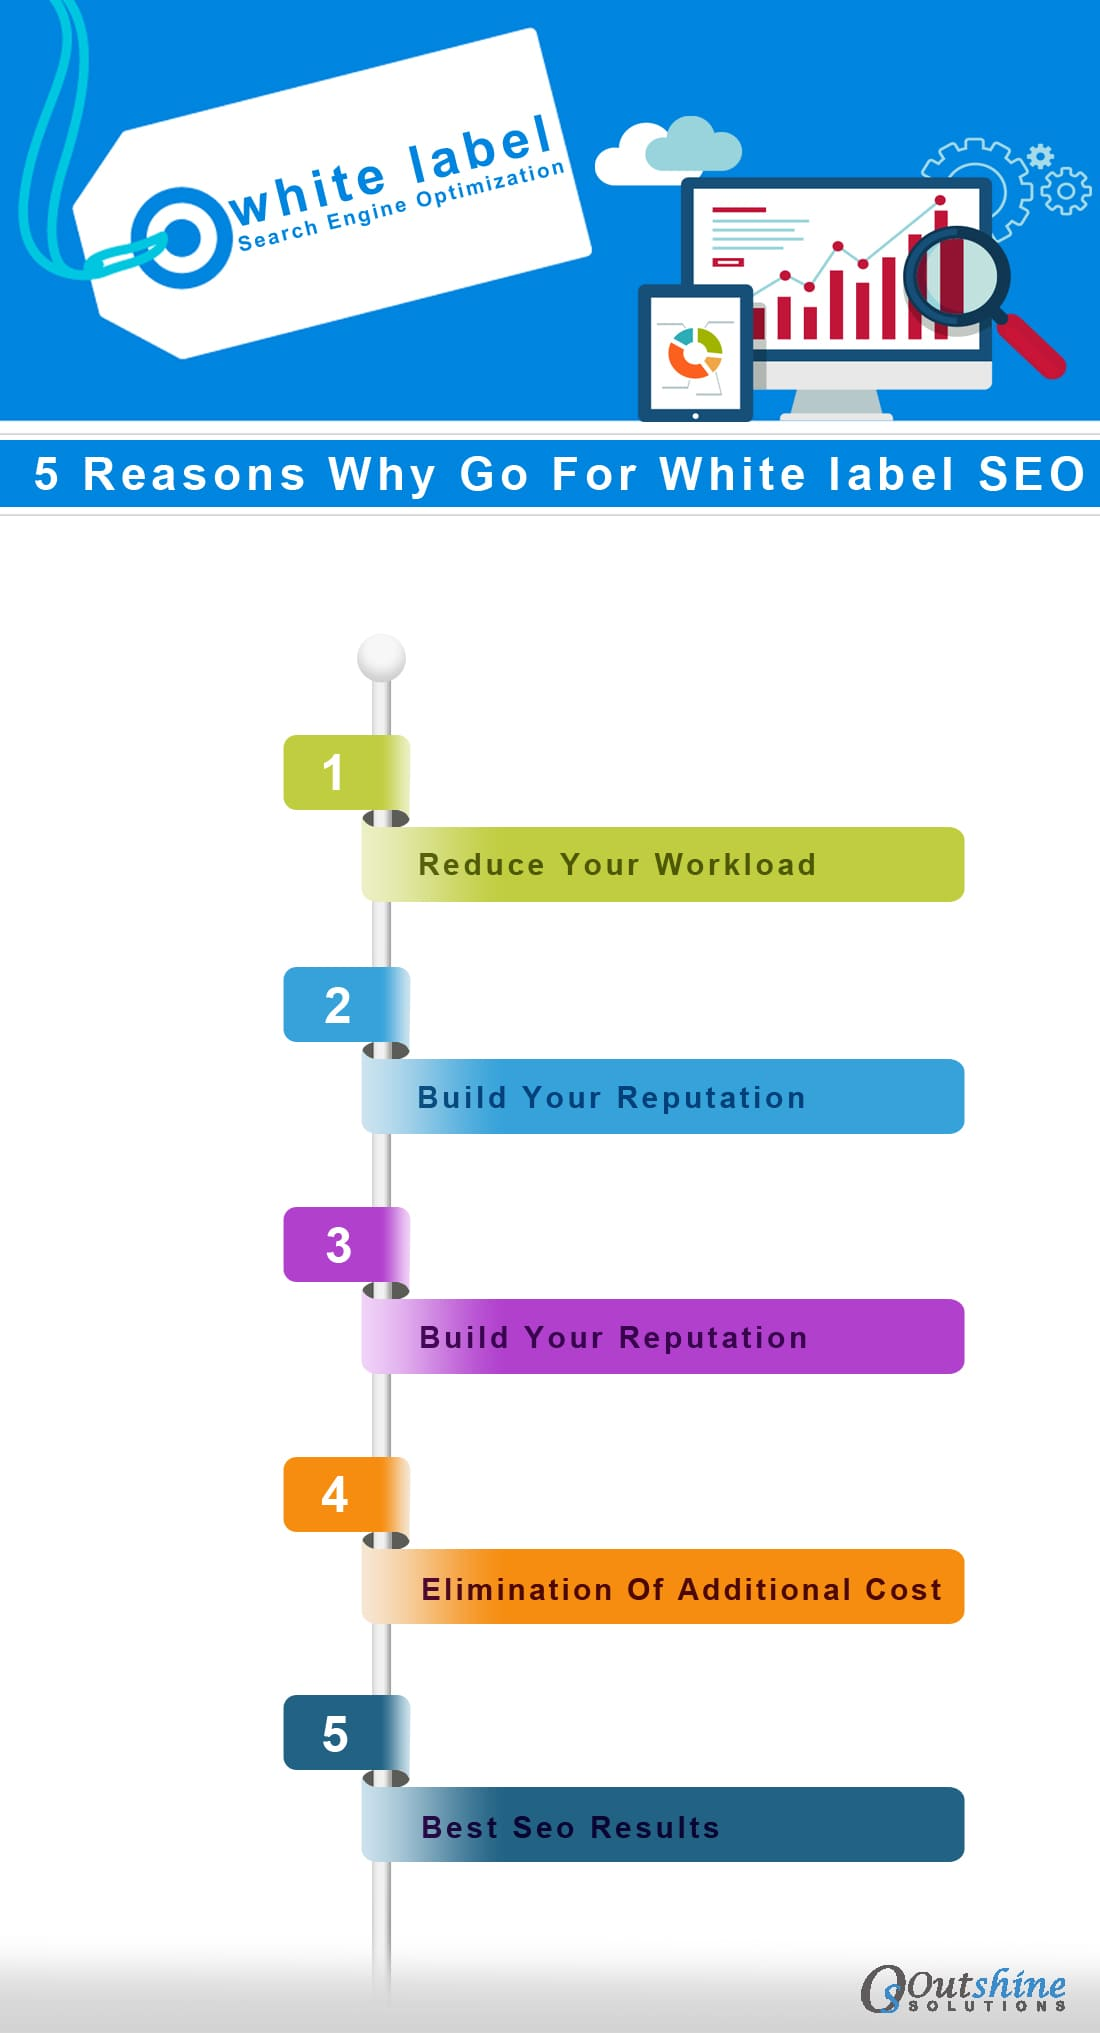 white label seo process